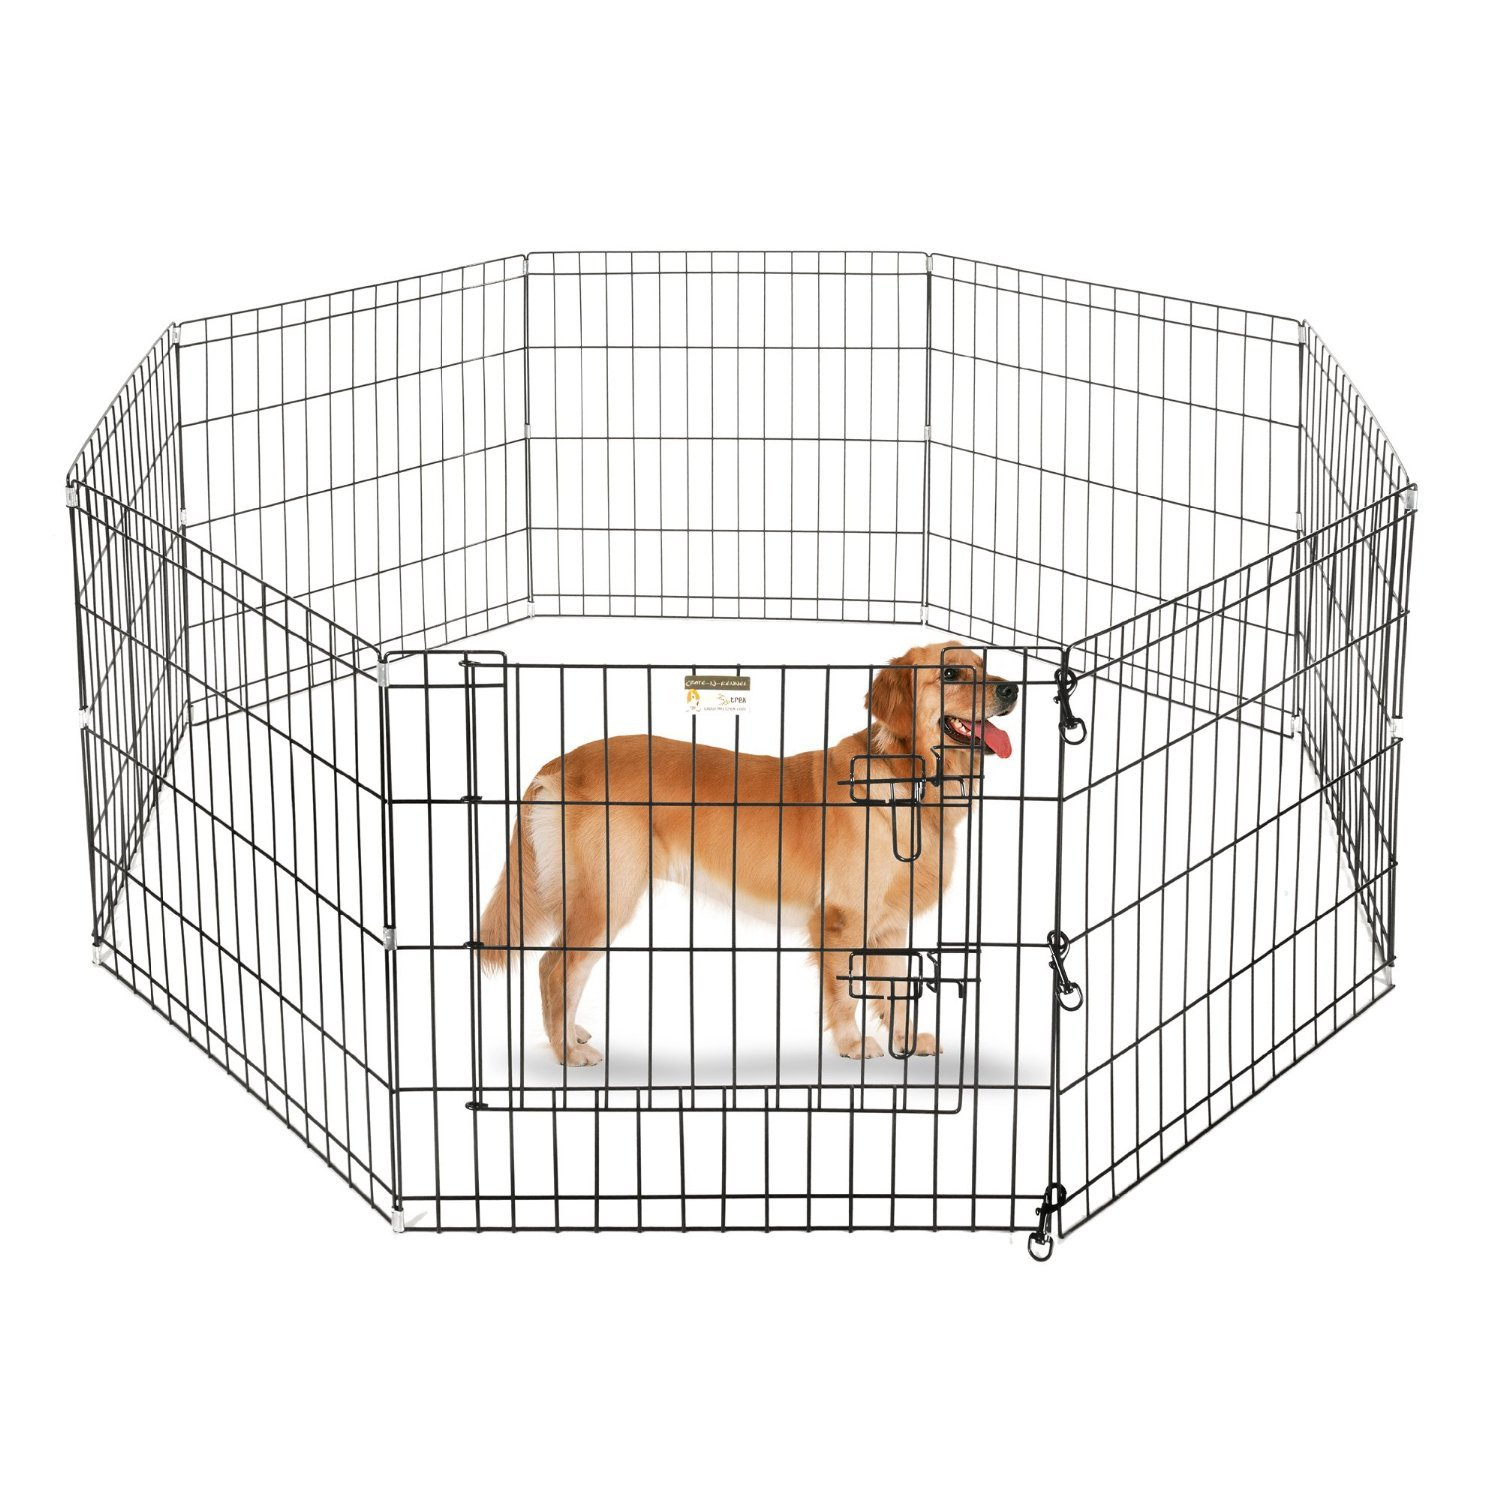 ALEKO SDK-48B Heavy Duty Pet Playpen Dog Kennel Pen Exercise Cage Fence 8 Panel 48 x 24 Inches Black by ALEKO